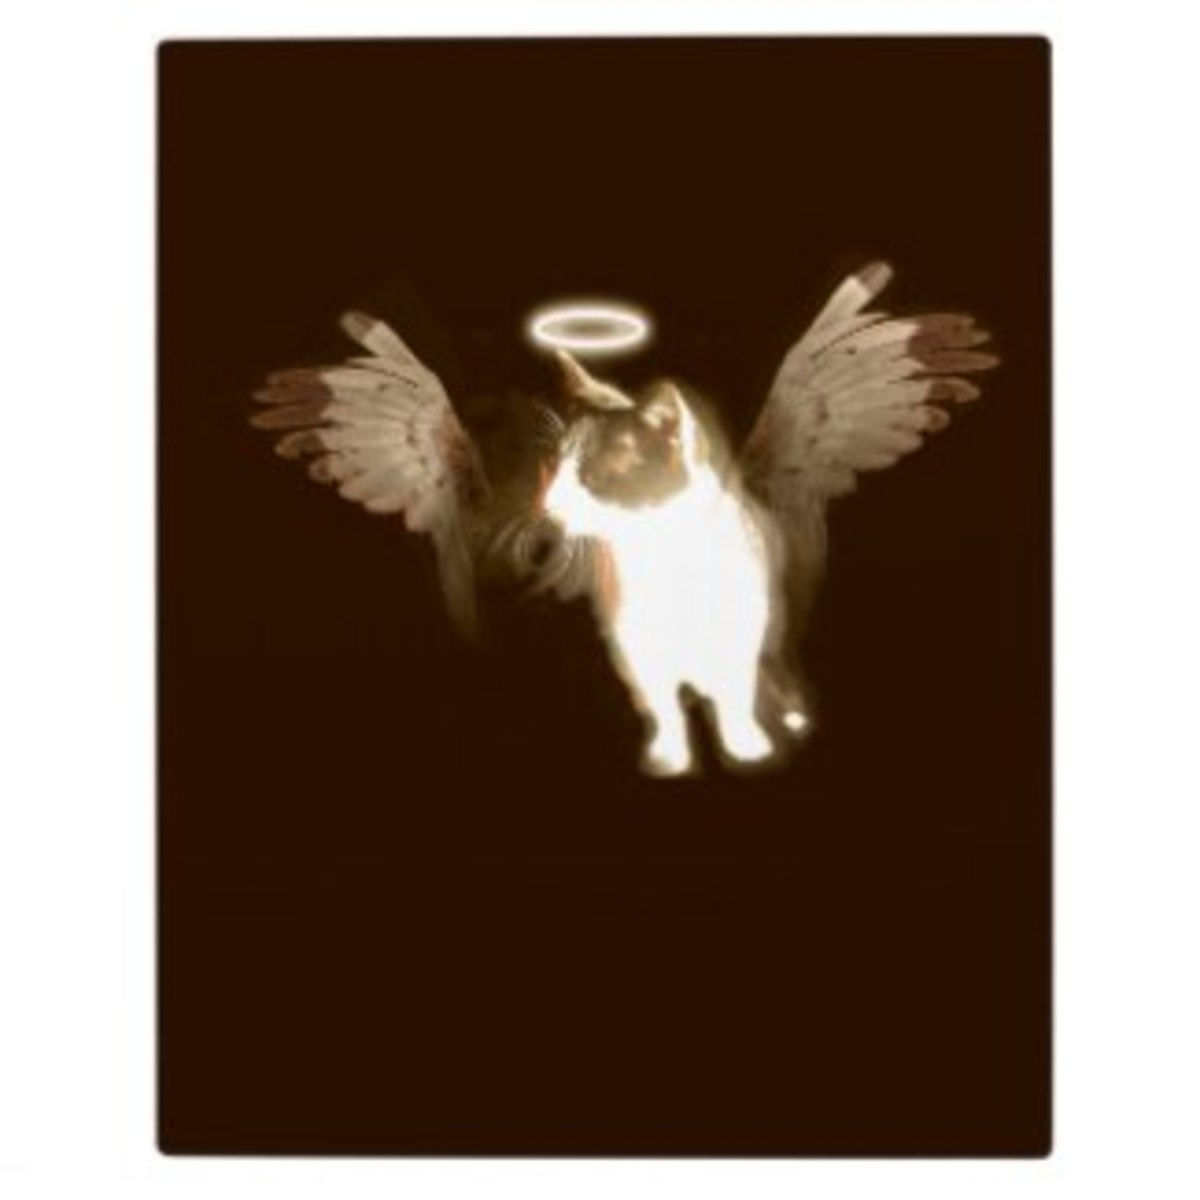 This vintage-style angel kitten comes on a whole host of gifts and cards that you can personalise by adding your own text and images http://www.zazzle.com/vintage_angel_kitten_plaque-200726671046219280